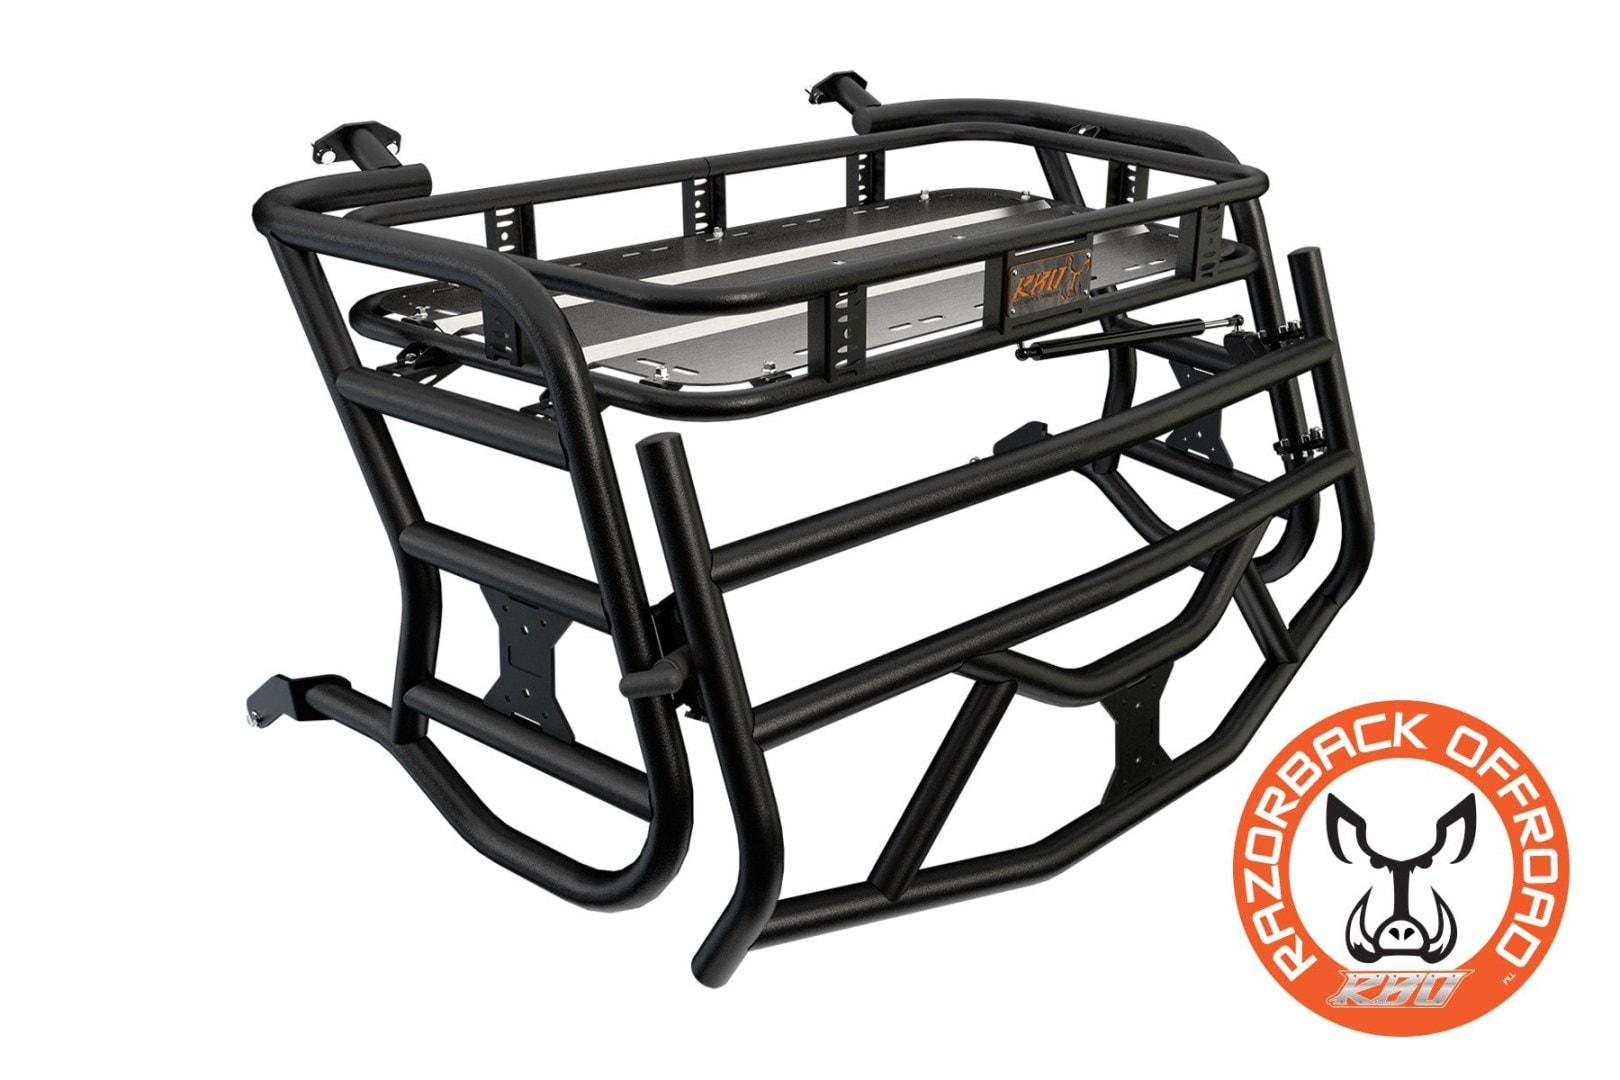 RAZORBACK OFFROAD EXPEDITION RACK POLARIS RZR 900/900 S